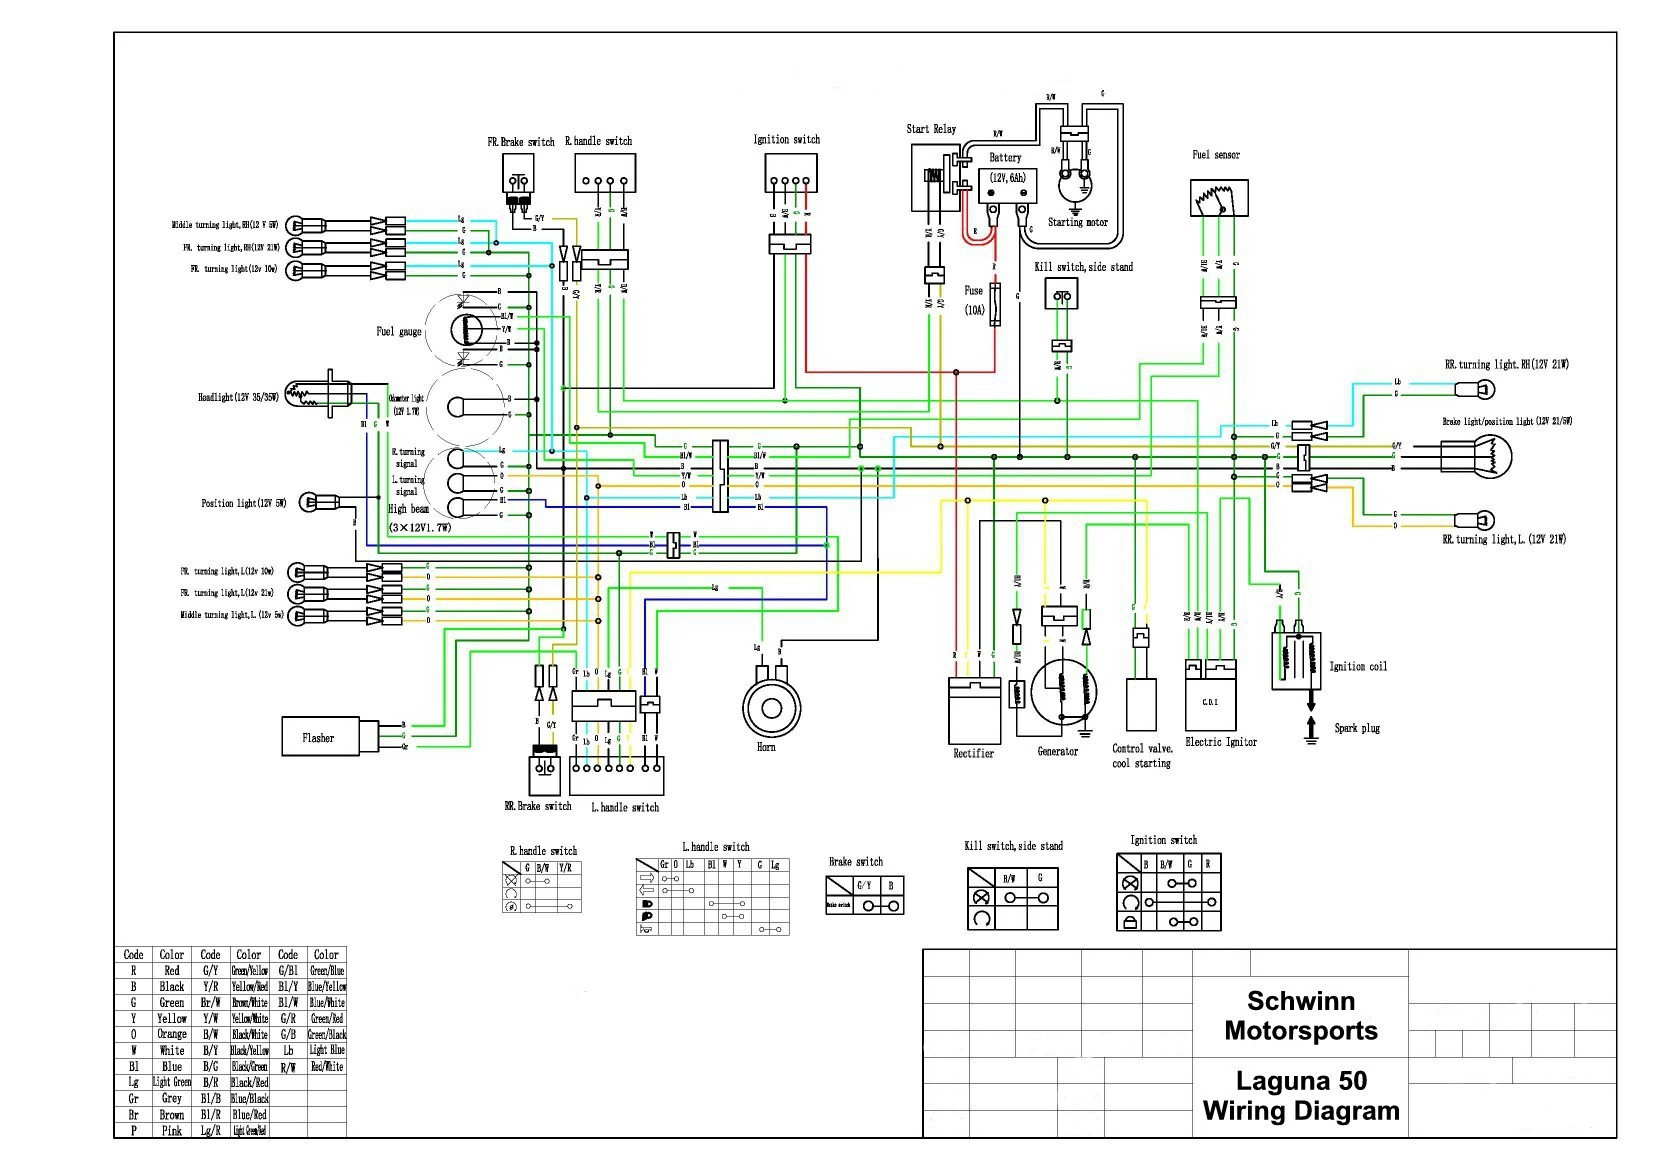 Howhit 150cc Engine Diagram Wiring Diagram for 3 Way Switches Multiple Lights Scooter with Basic Of Howhit 150cc Engine Diagram Gy6 Go Kart Wiring Diagram Download